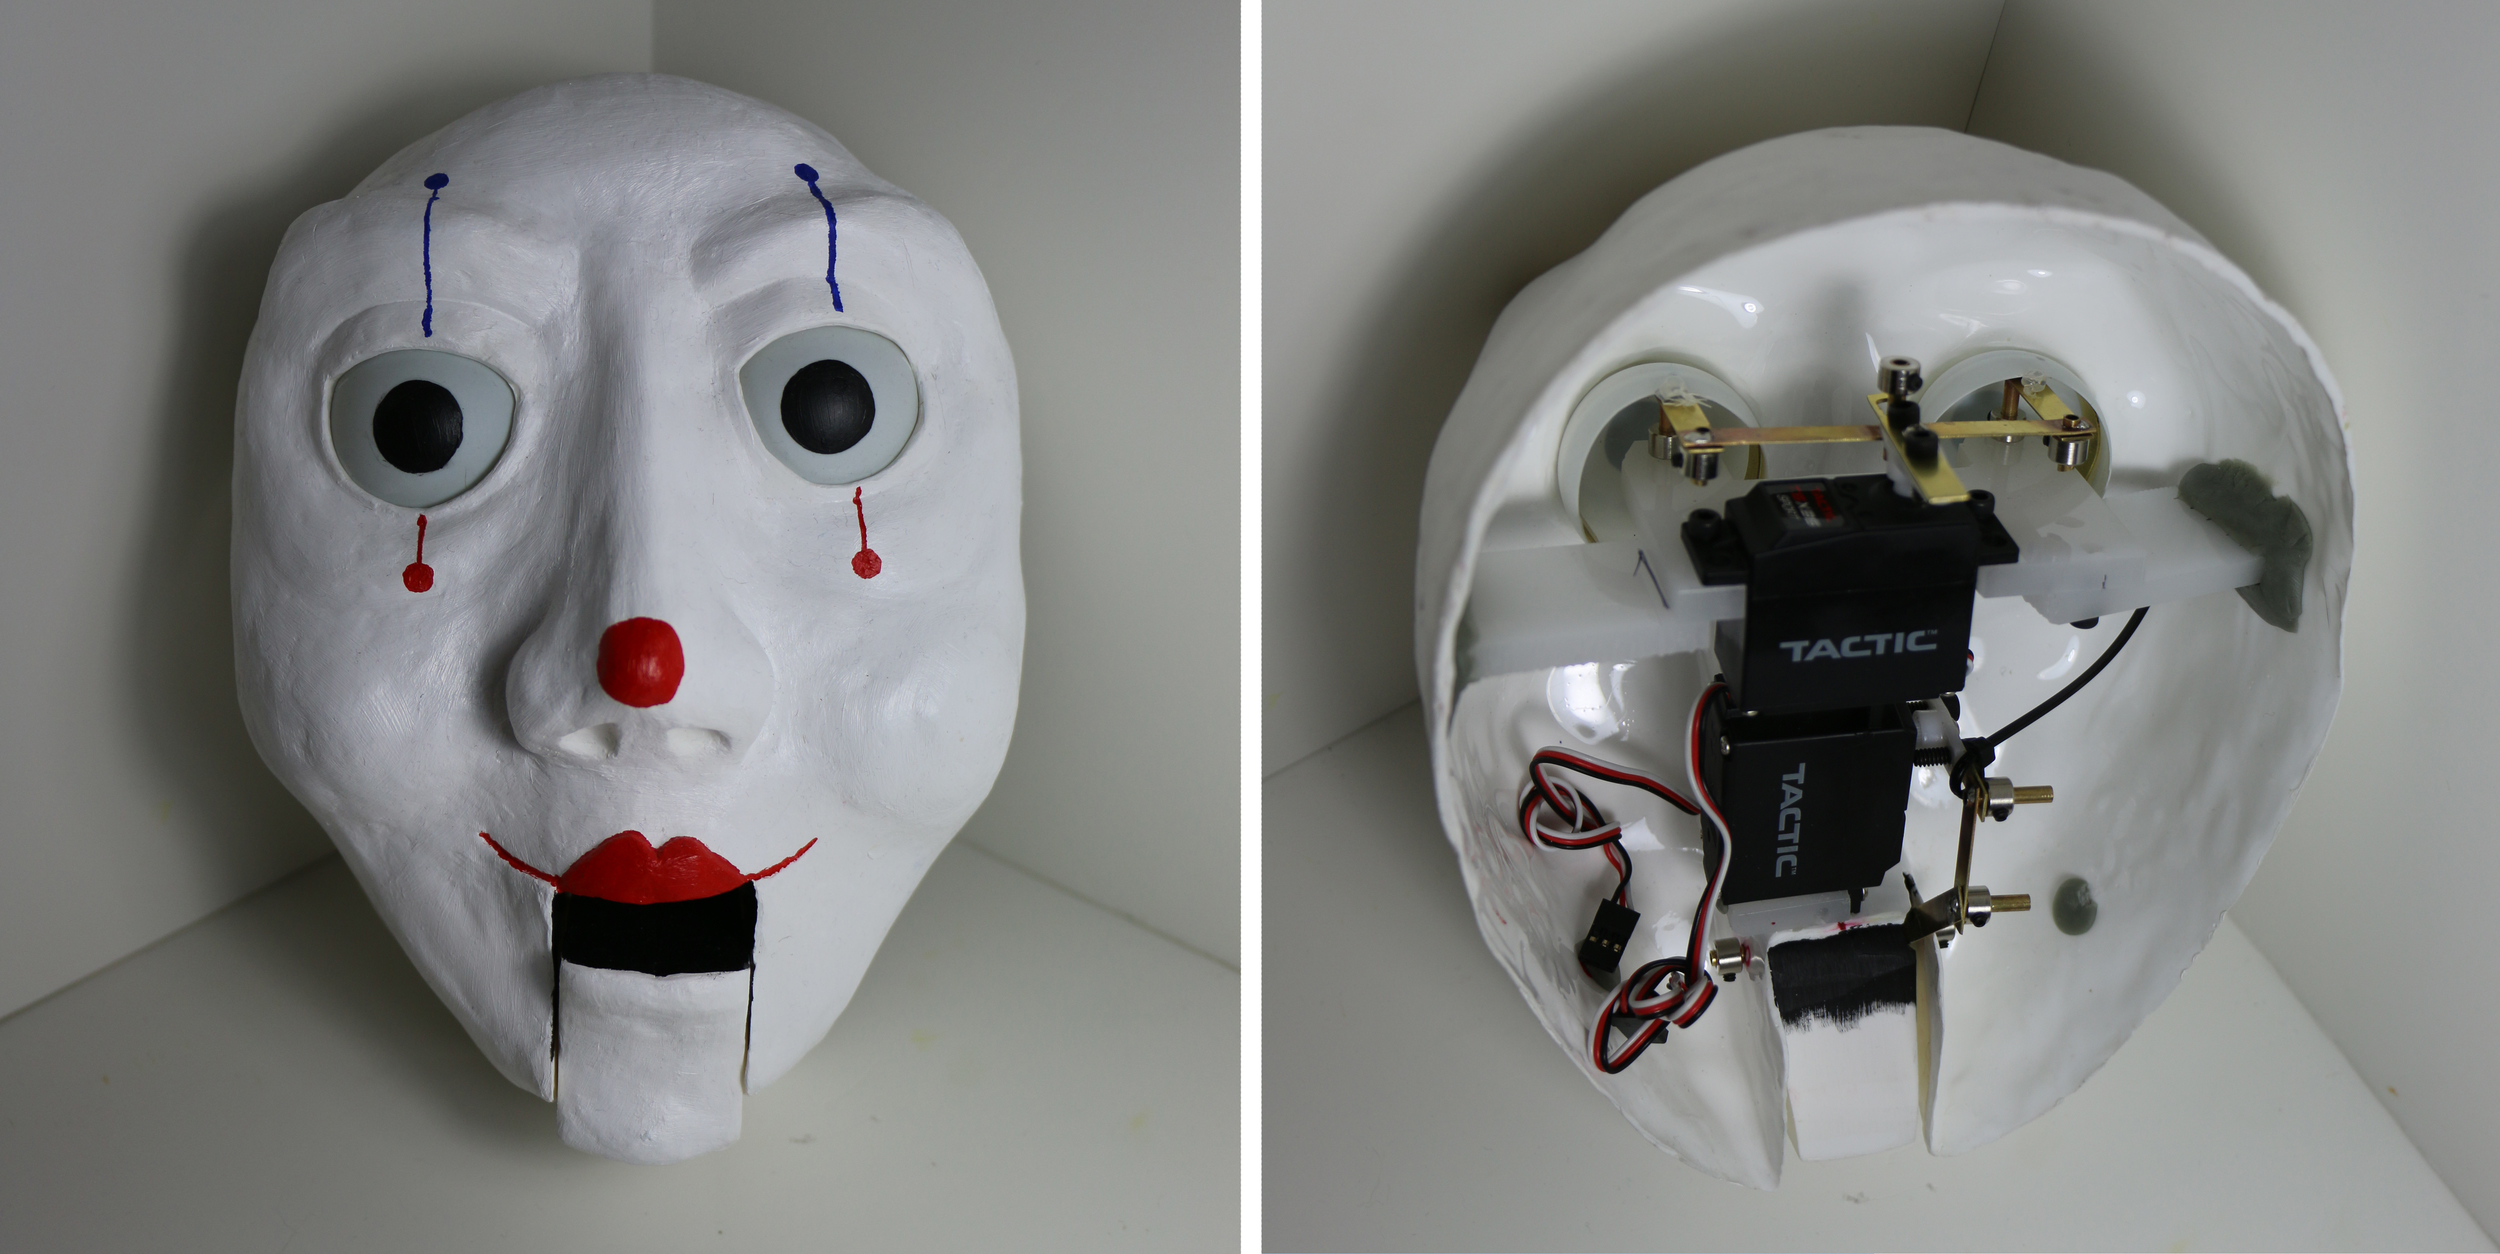 Animatronic Clown, eyes and mouth move via R/C. (2015)